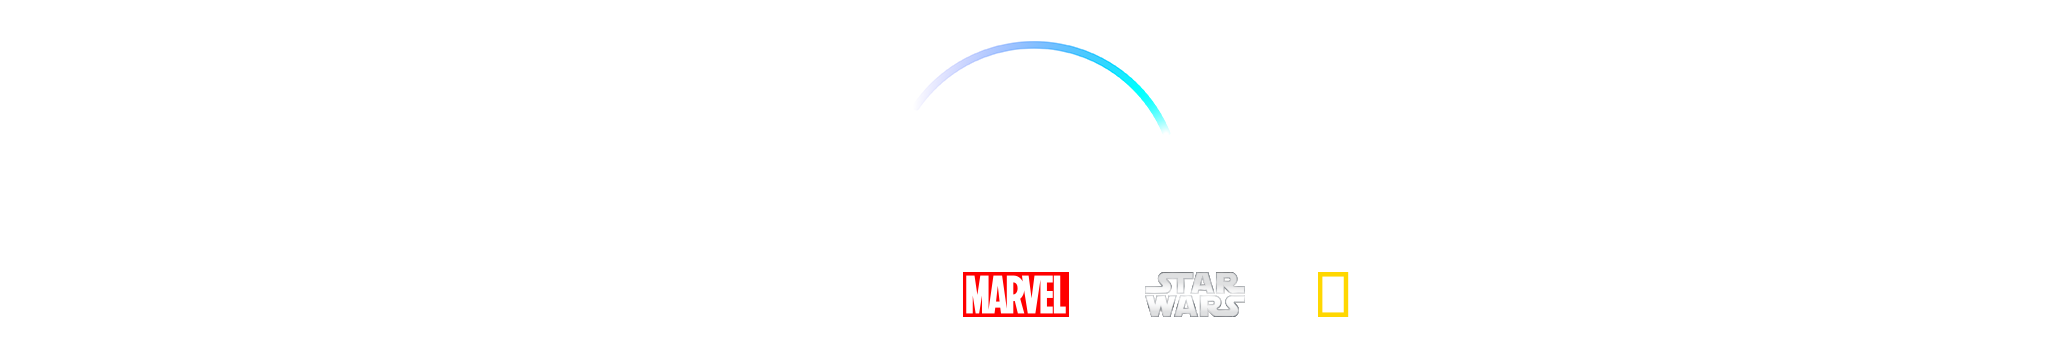 Disney+. Disney, Pixar, Marvel, Star Wars, and National Geographic.